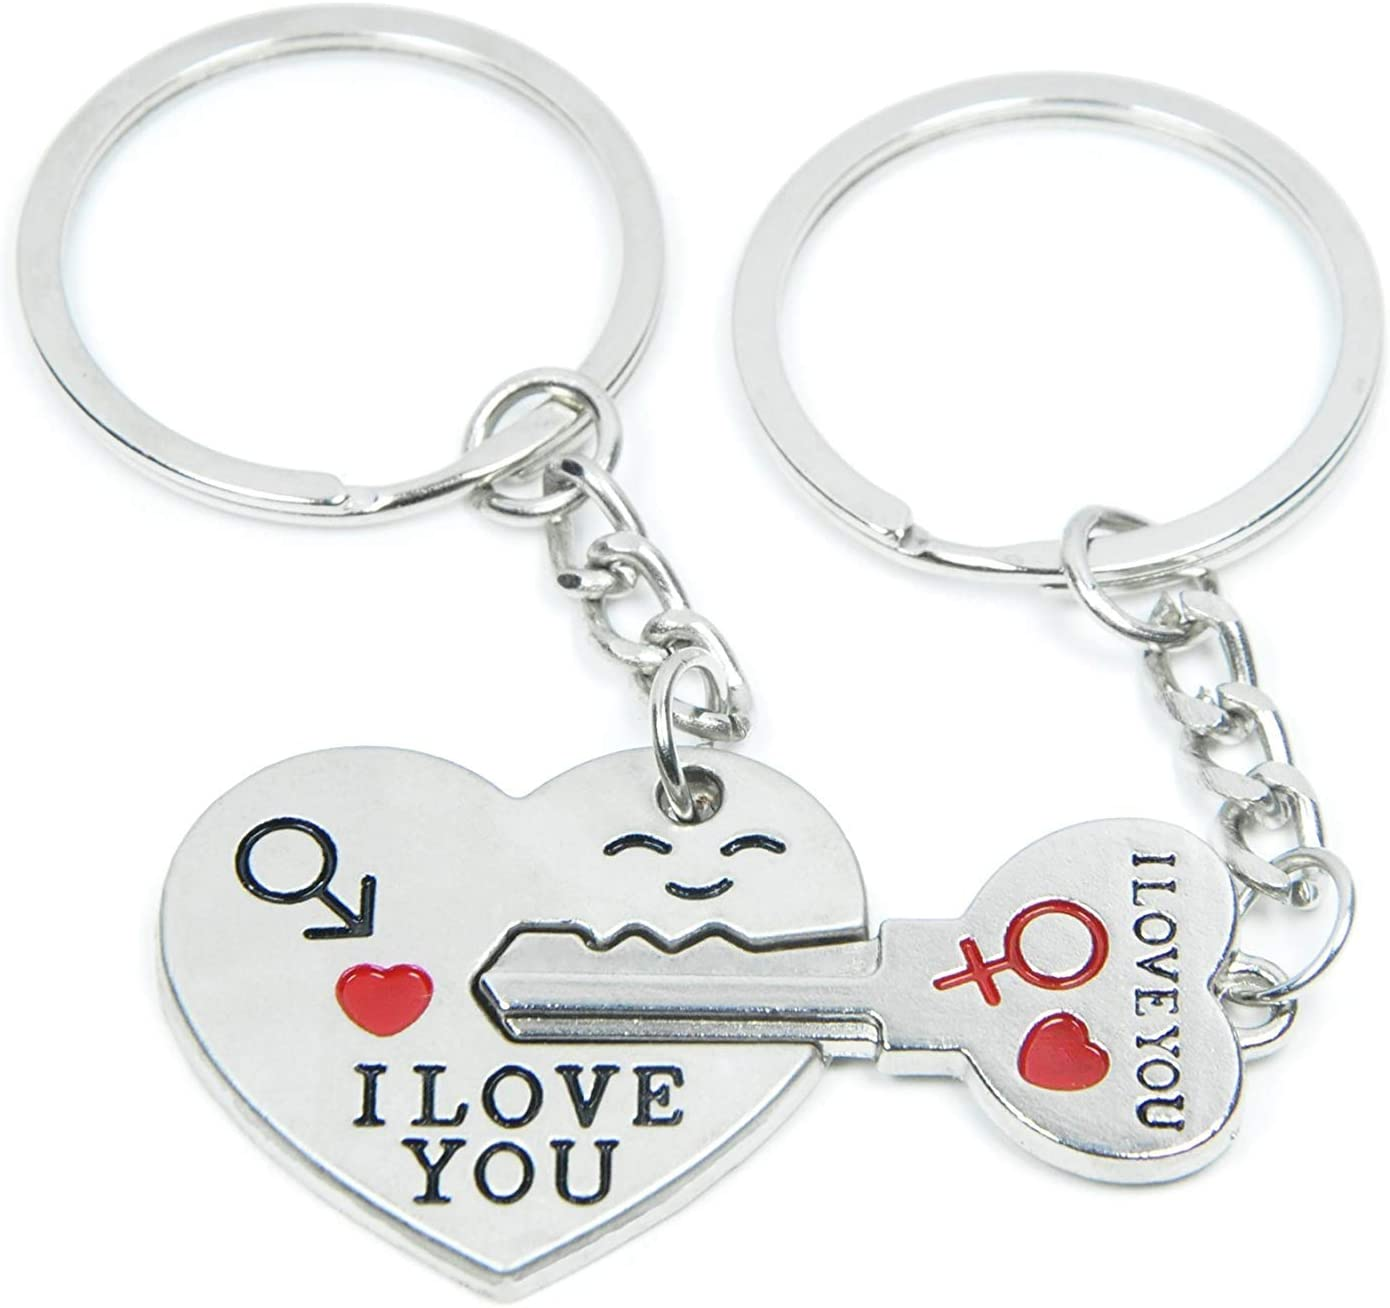 His /& Hers Key To My Heart Couples Necklace Key Ring Xmas Gifts For Her Wife Him